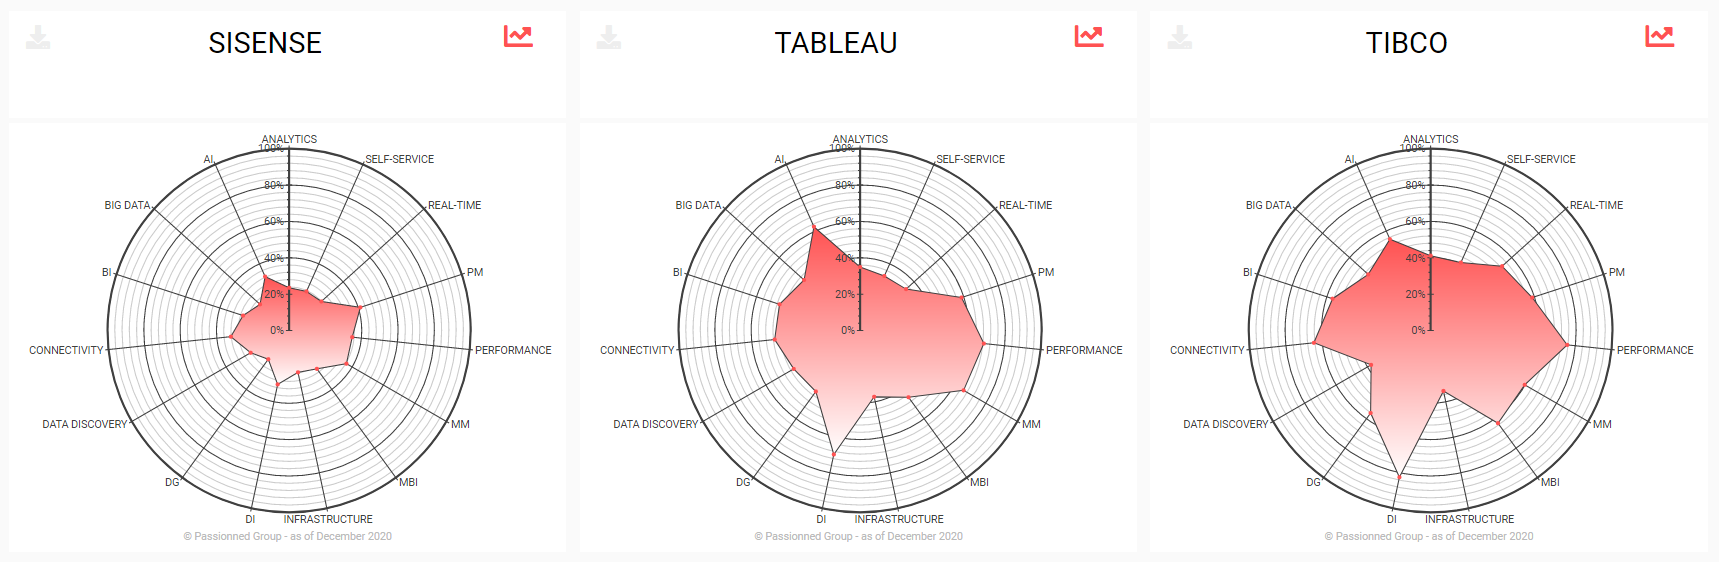 Radar graph visualizations generated by Intelligent Insights